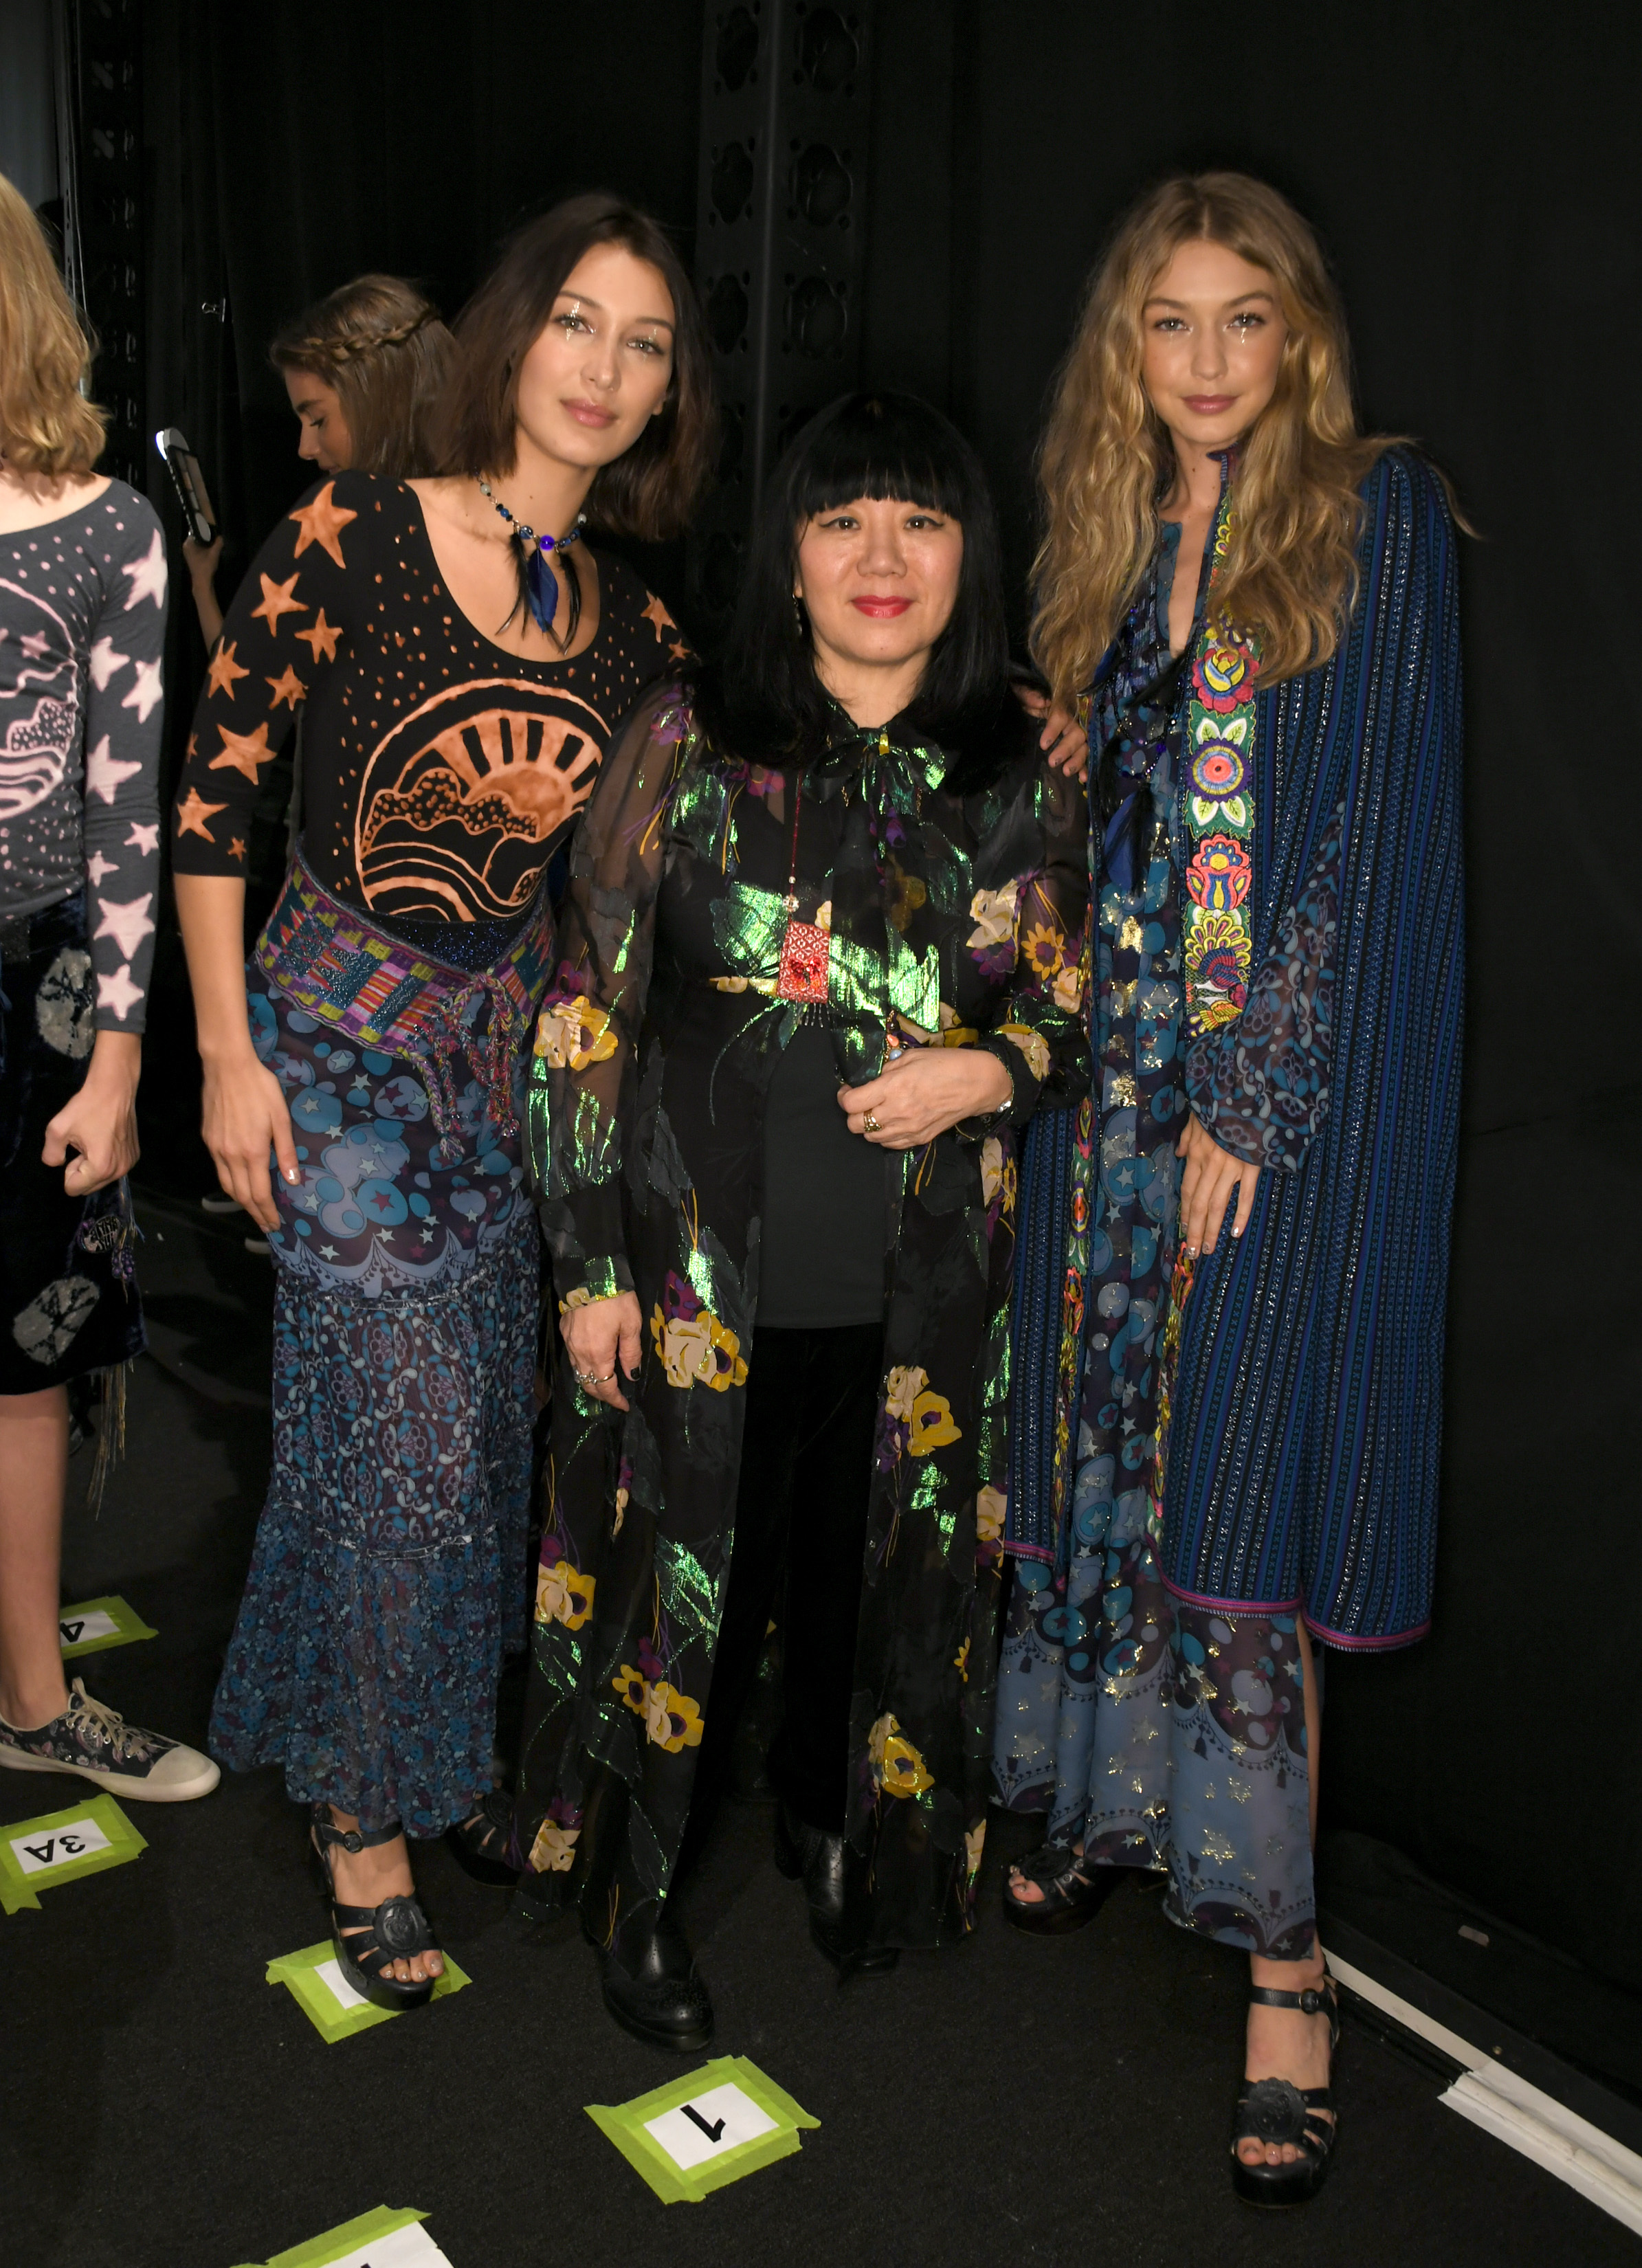 Bella Hadid, Anna Sui, Gigi Hadid backstage during the Anna Sui Spring 2018 Collection, held during NYFW at Skylight Clarkson Studios in New York City on Monday, September 11, 2017. (Photo by Elise Leclerc)